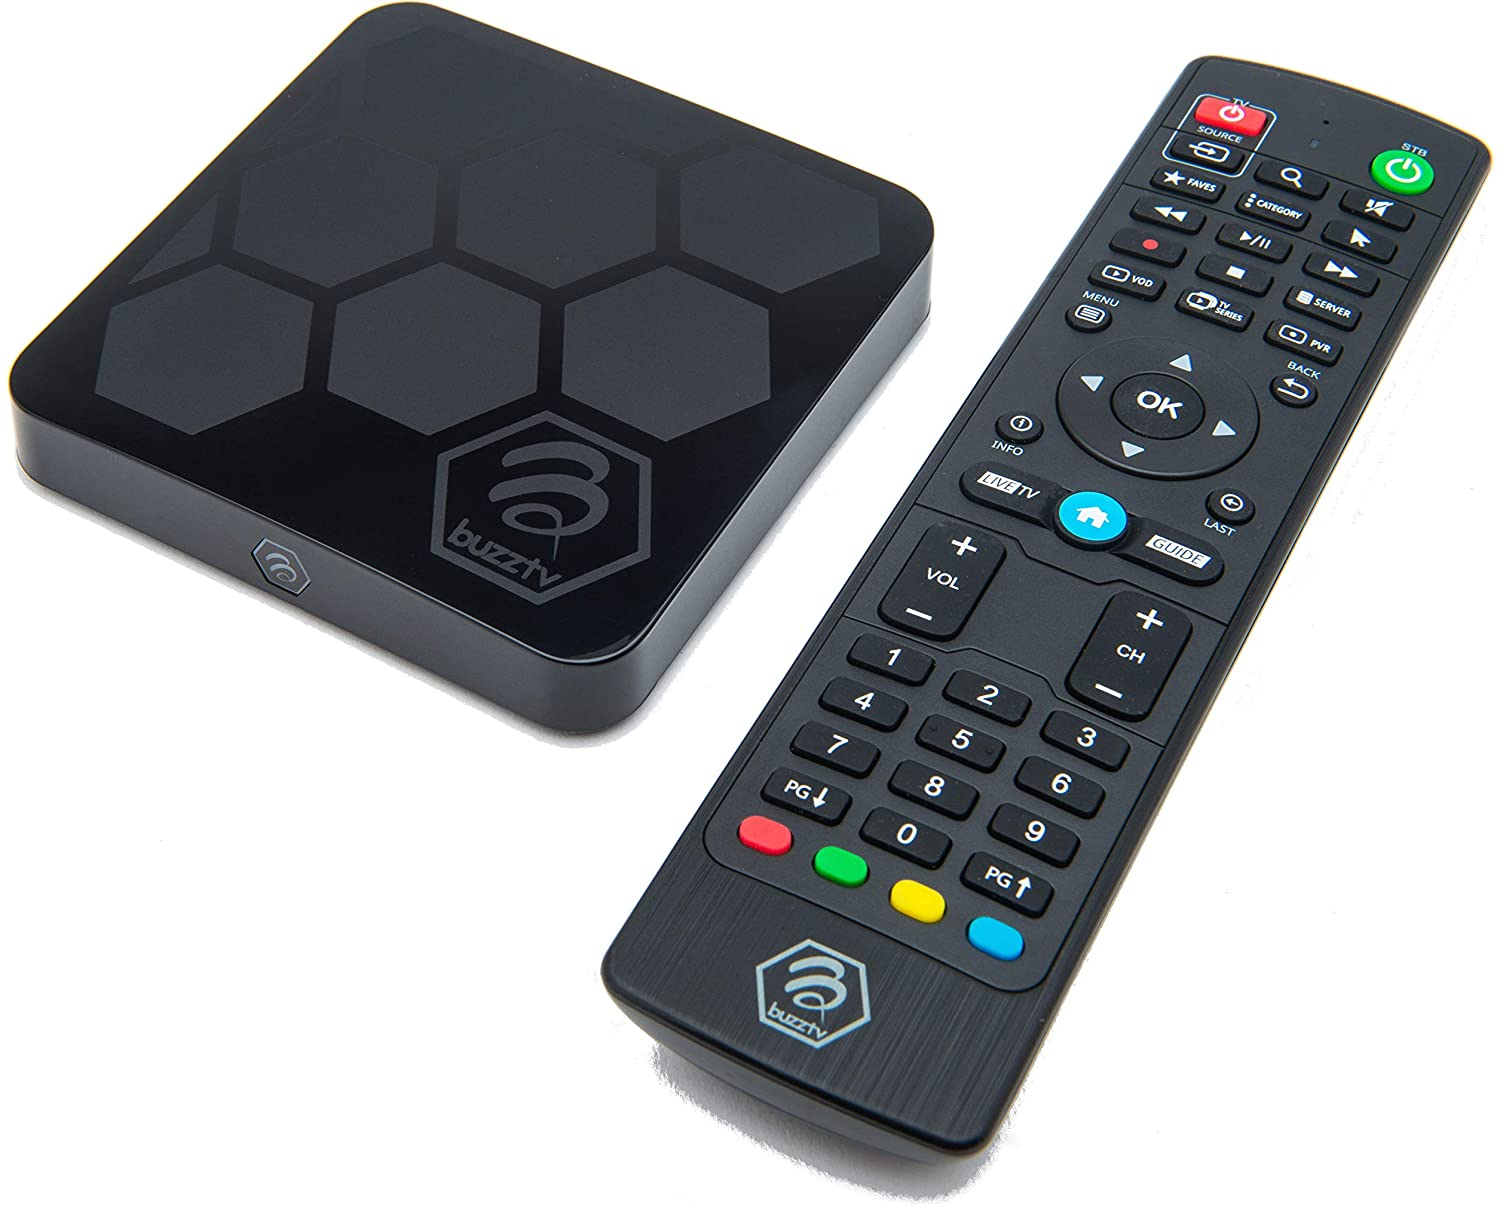 Buzz TV Android box